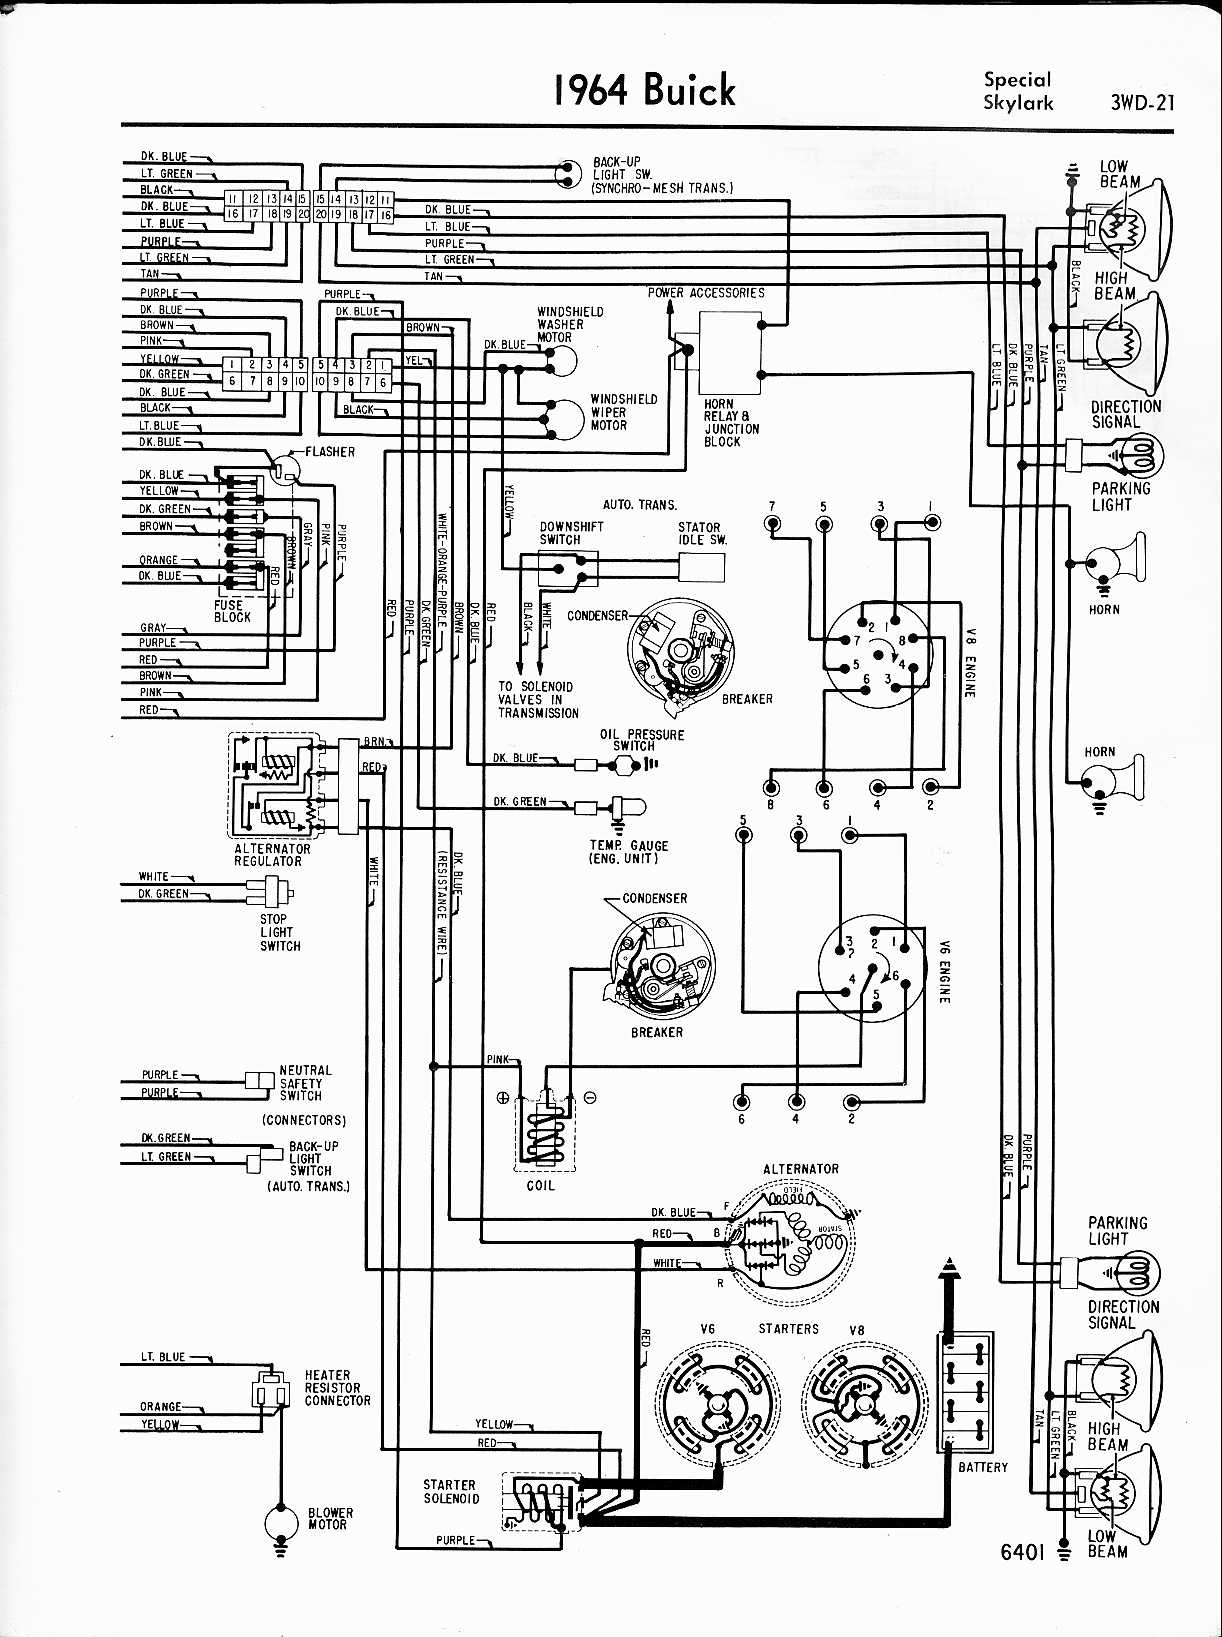 Buick Regal Gs Drl Wiring Diagram 2014 on 1998 isuzu hombre engine diagram